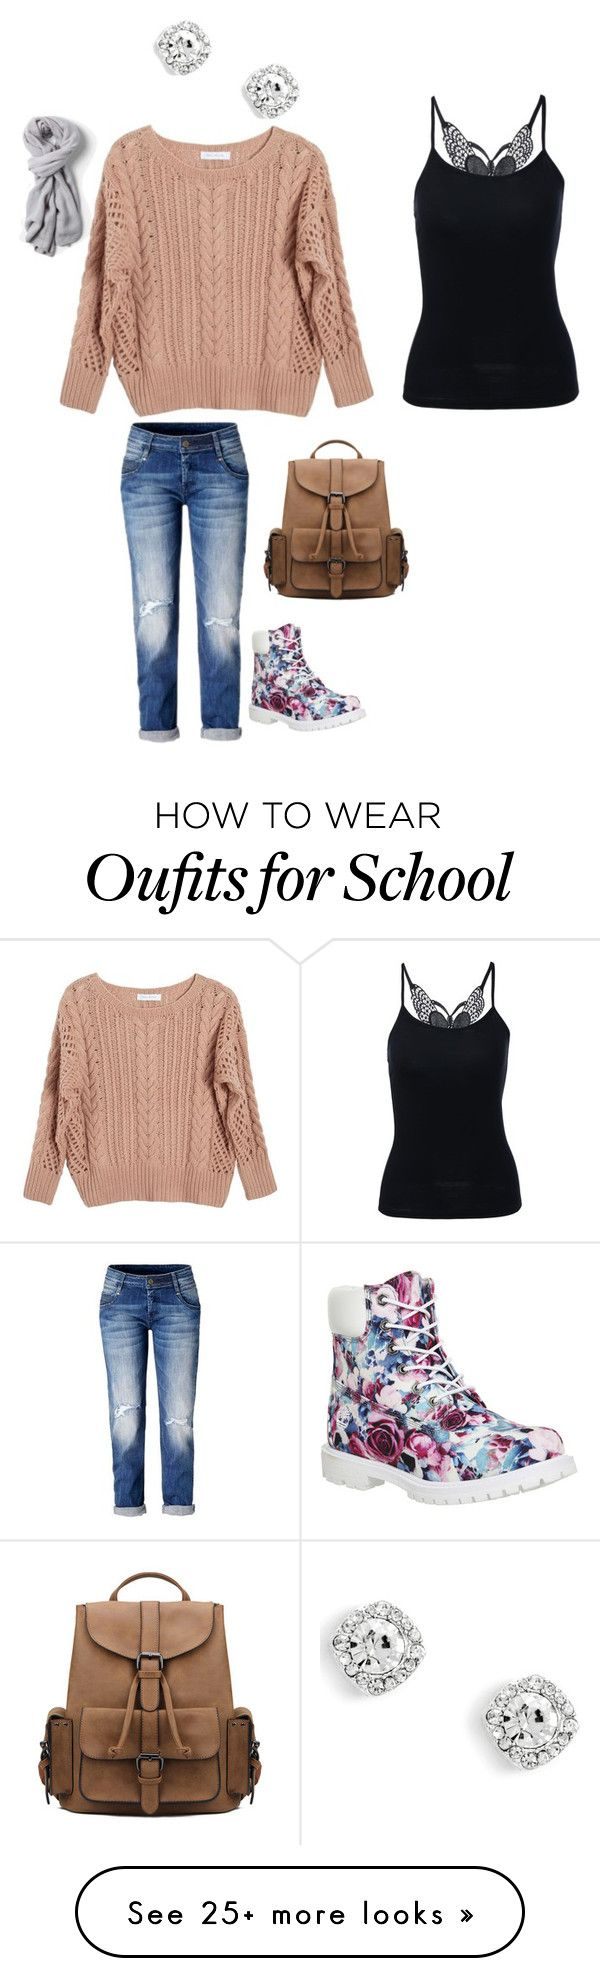 """""""school"""" by baileya0726 on Polyvore featuring Ryan Roche and Timberland"""